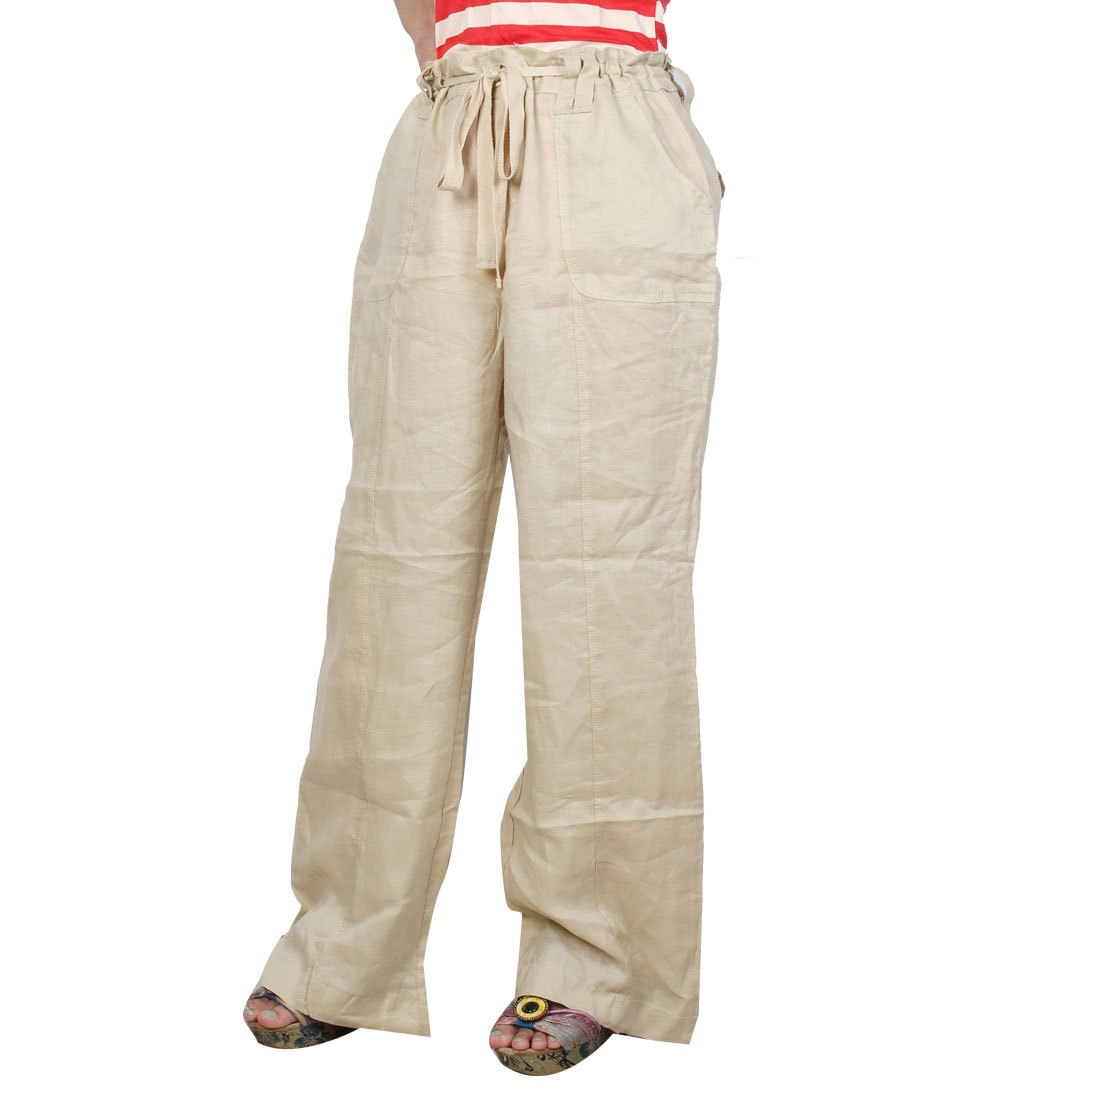 Women Slanting Pockets Front Button Closure Leisure Pants Beige XL